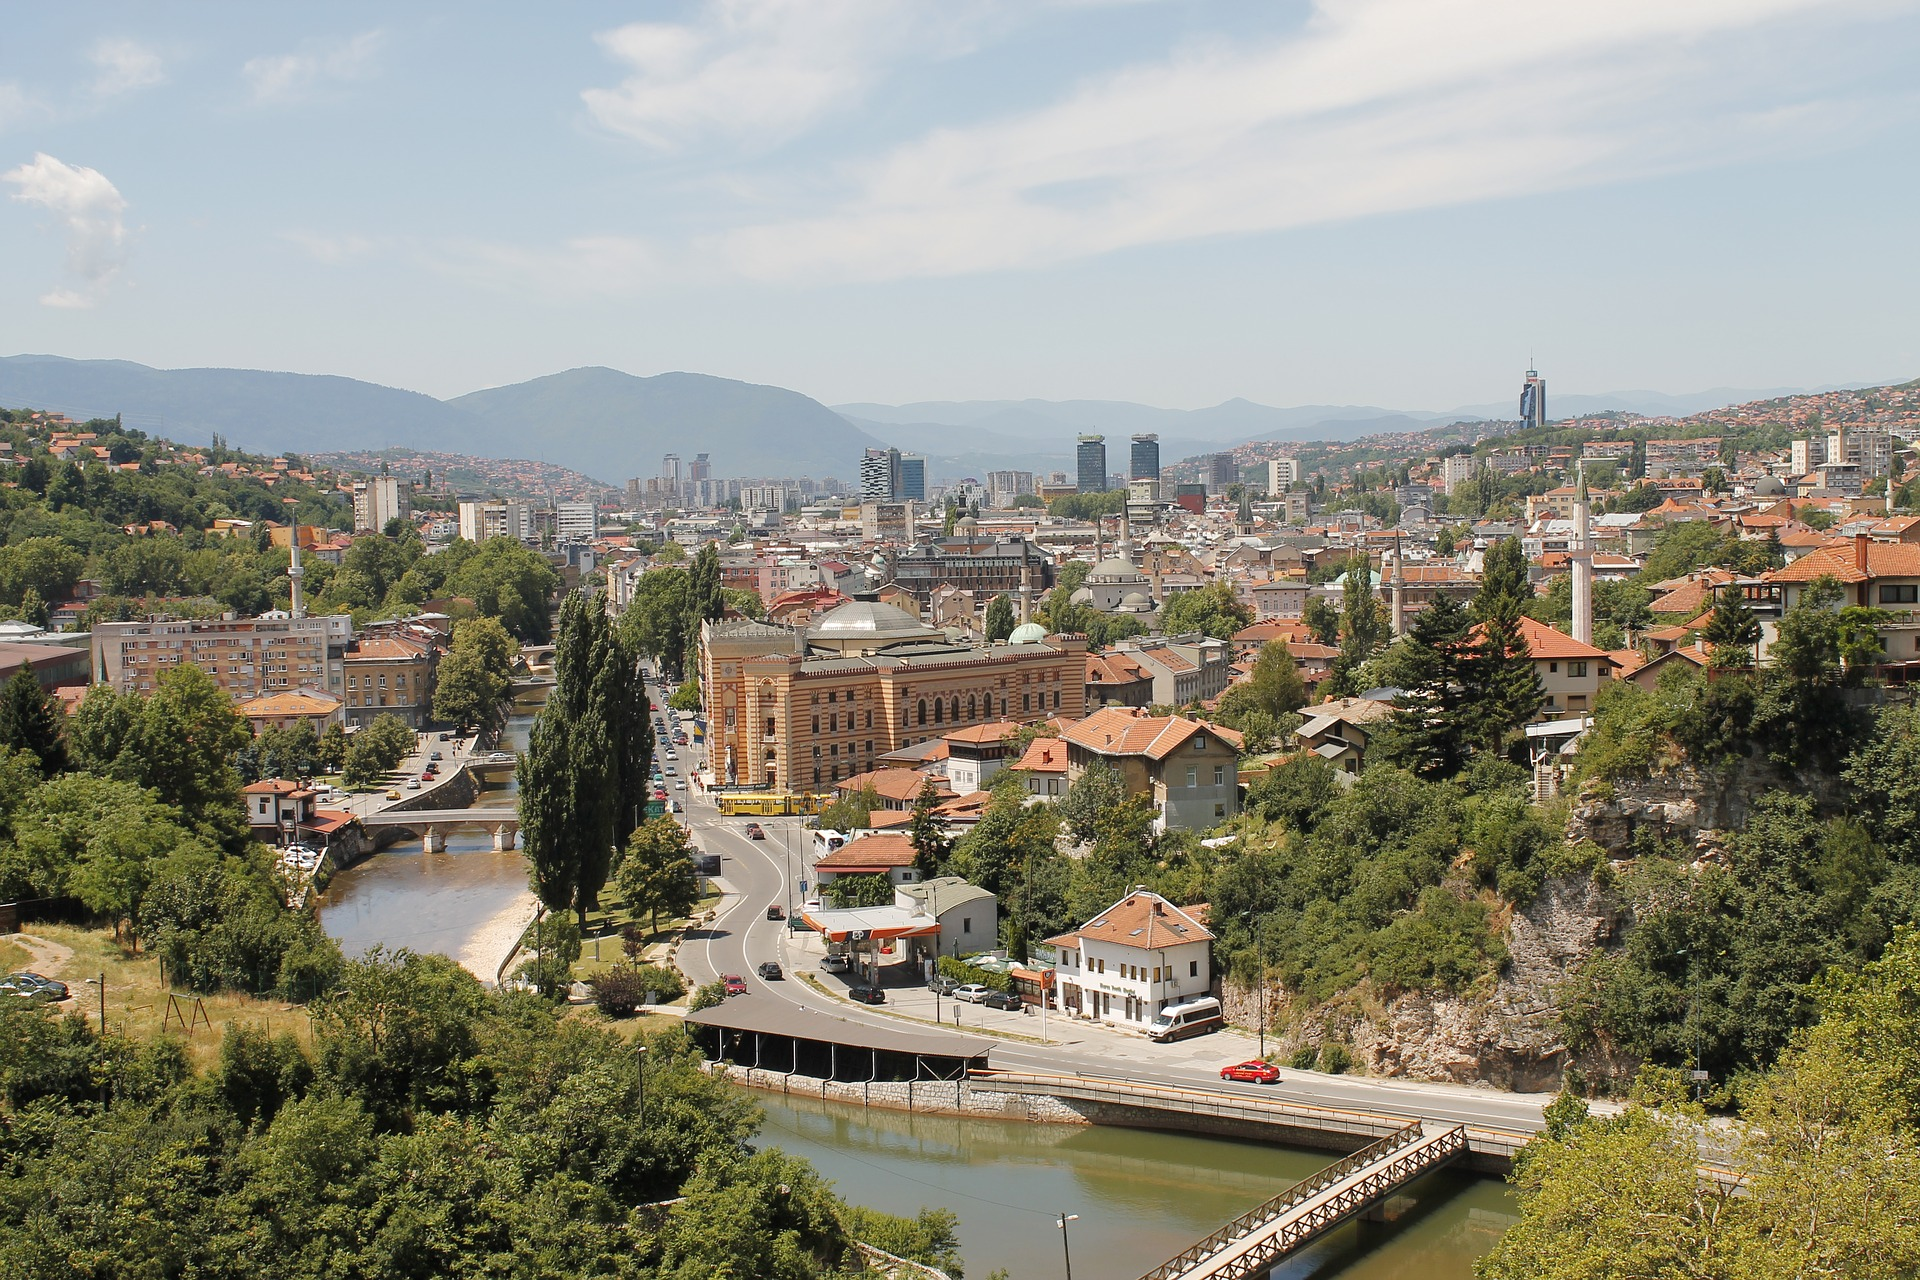 Bird's eye view of Sarajevo